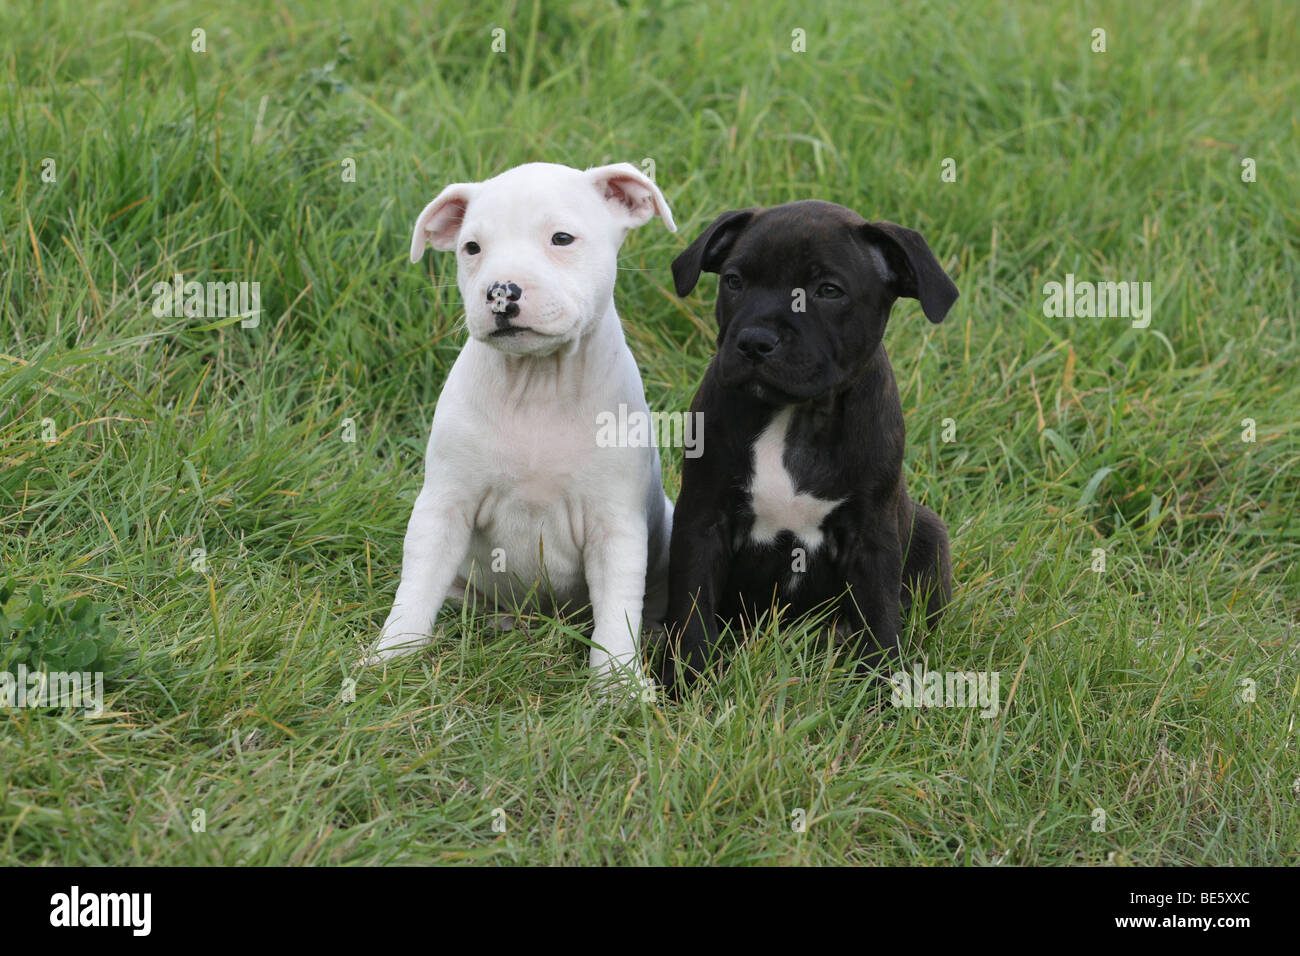 2 Staffordshire Bull Terrier puppies, 6 weeks old, sitting side by side on the lawn Stock Photo